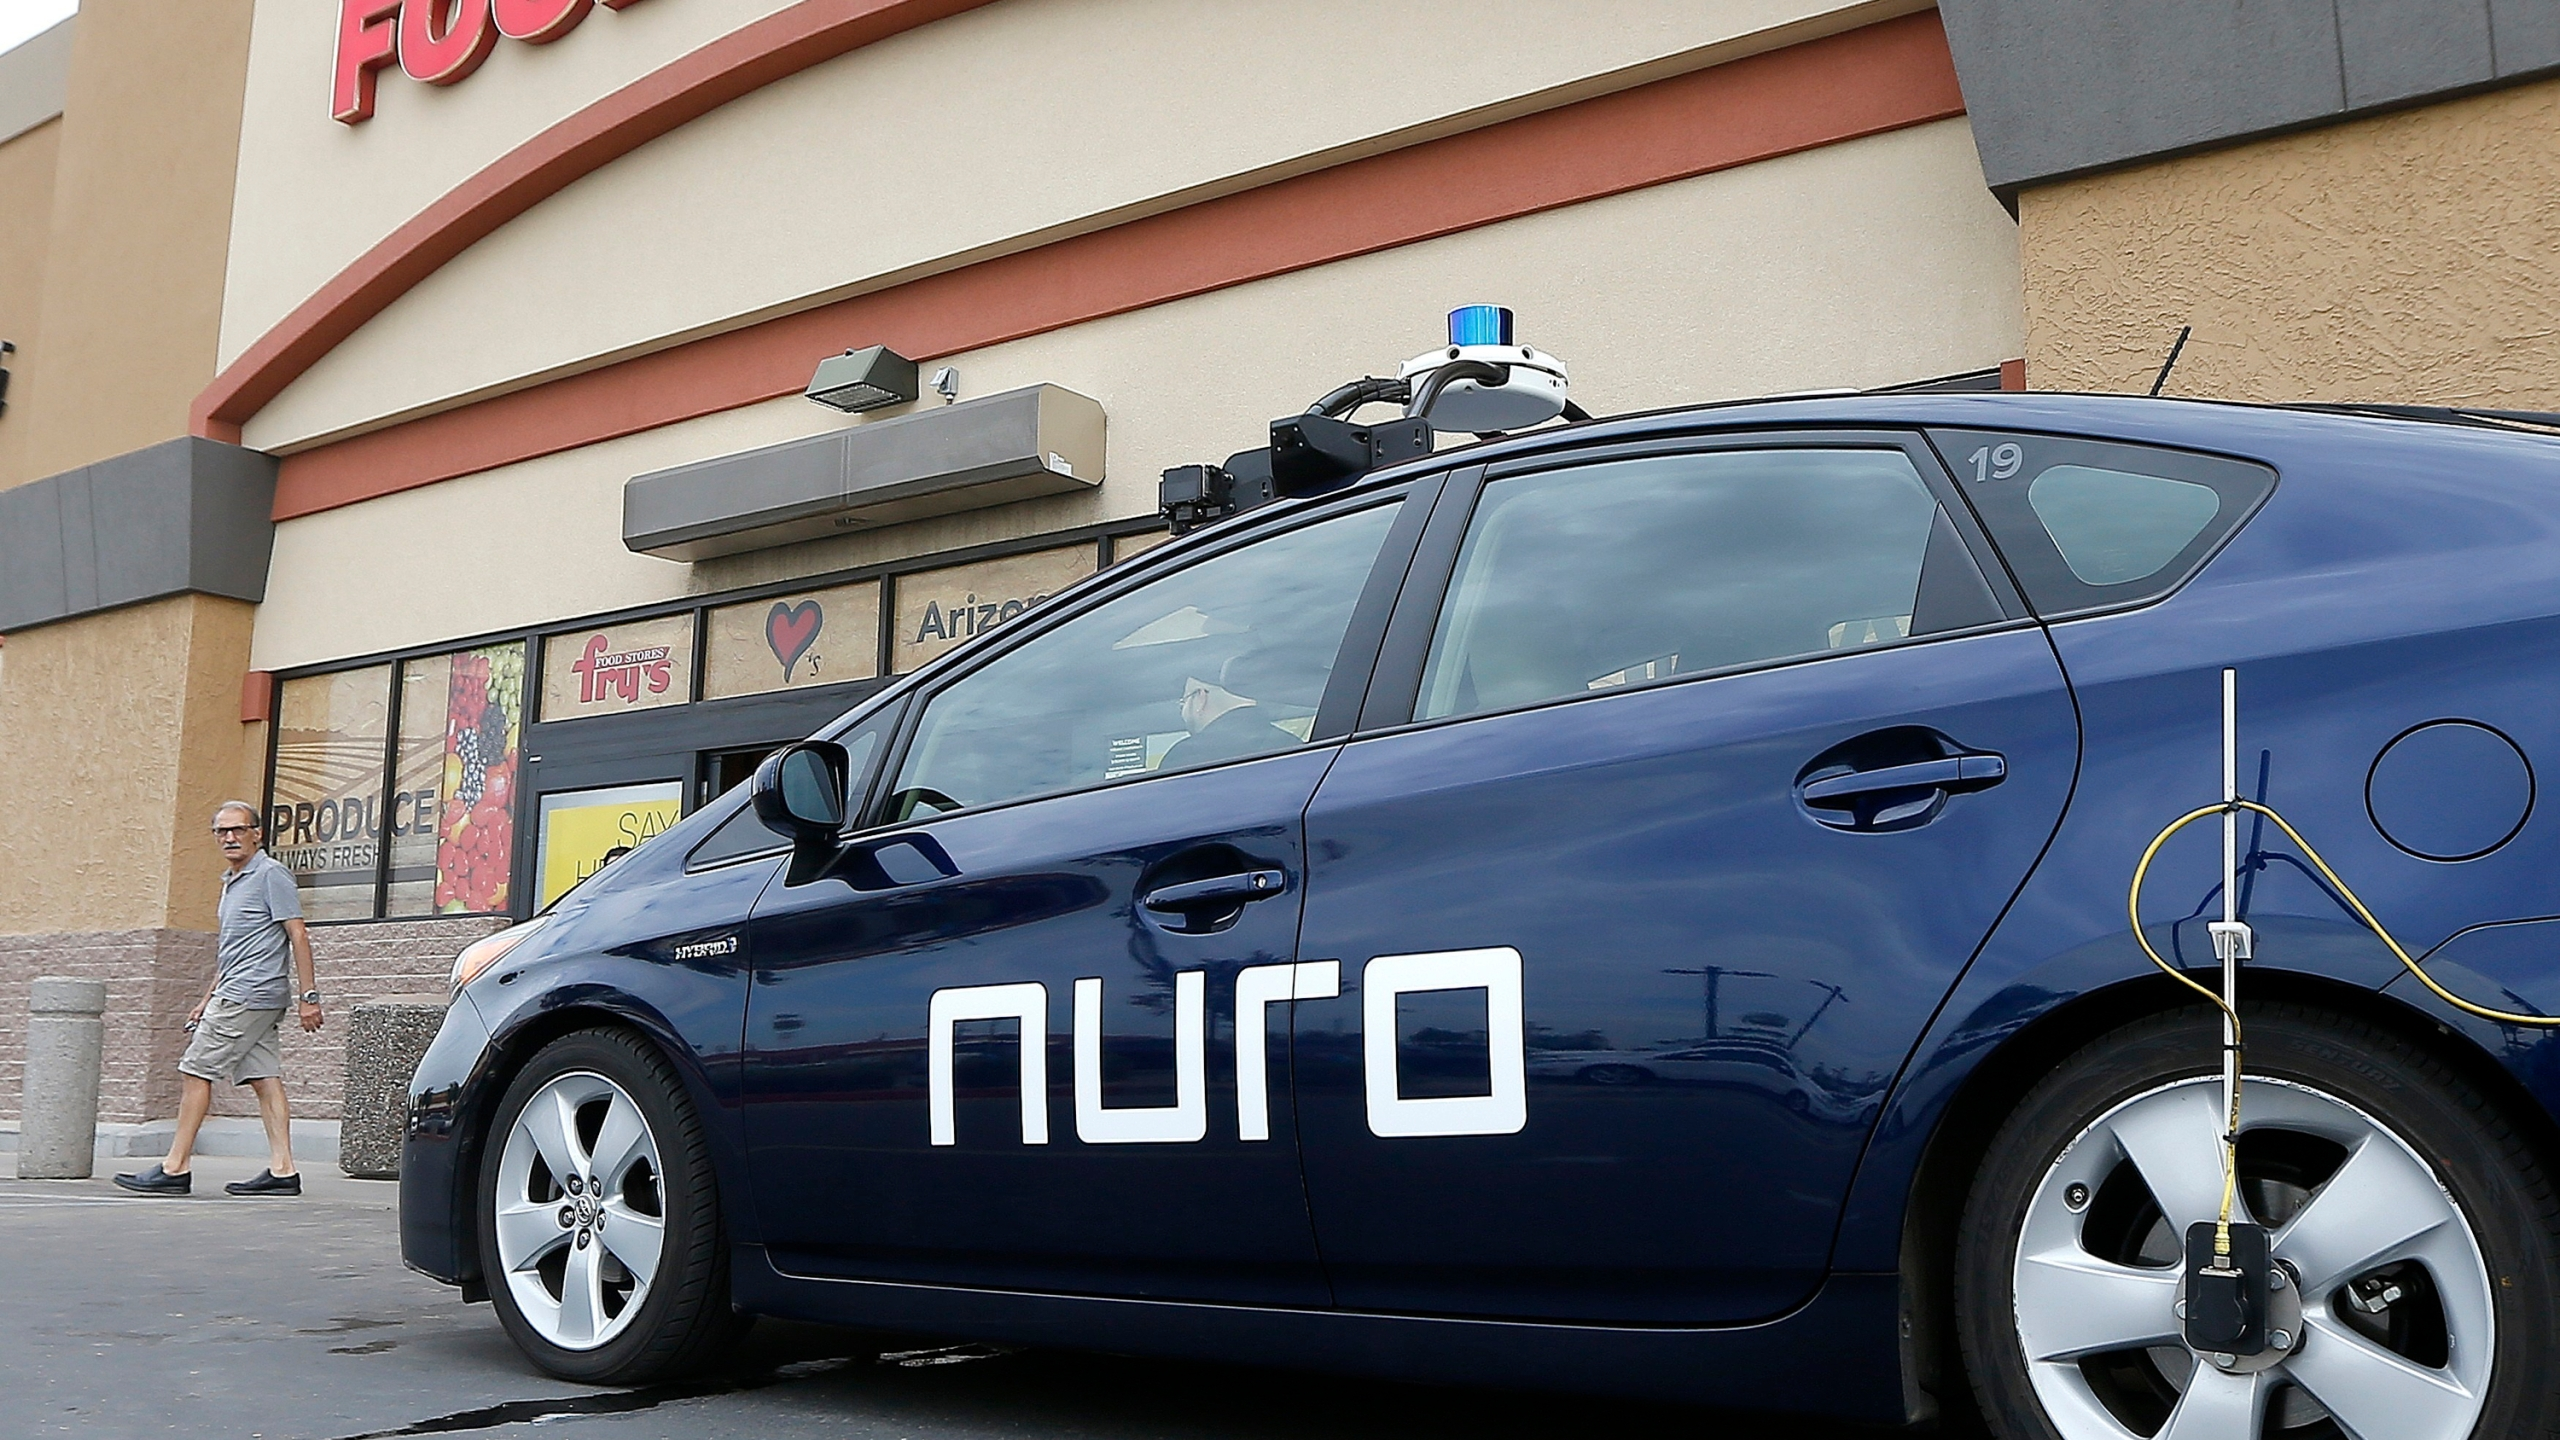 In this Aug. 16, 2018, file photo, a self-driving Nuro vehicle parks outside a Fry's supermarket, which is owned by Kroger, as part of a pilot program for grocery deliveries in Scottsdale, Ariz. Nuro, the robotics company that develops driverless vehicles for on-road grocery, pizza and prescription deliveries said Thursday, Aug. 26, 2021, it intends to spend $40 million to put a manufacturing facility at the Las Vegas Motor Speedway. (AP Photo/Ross D. Franklin, File)